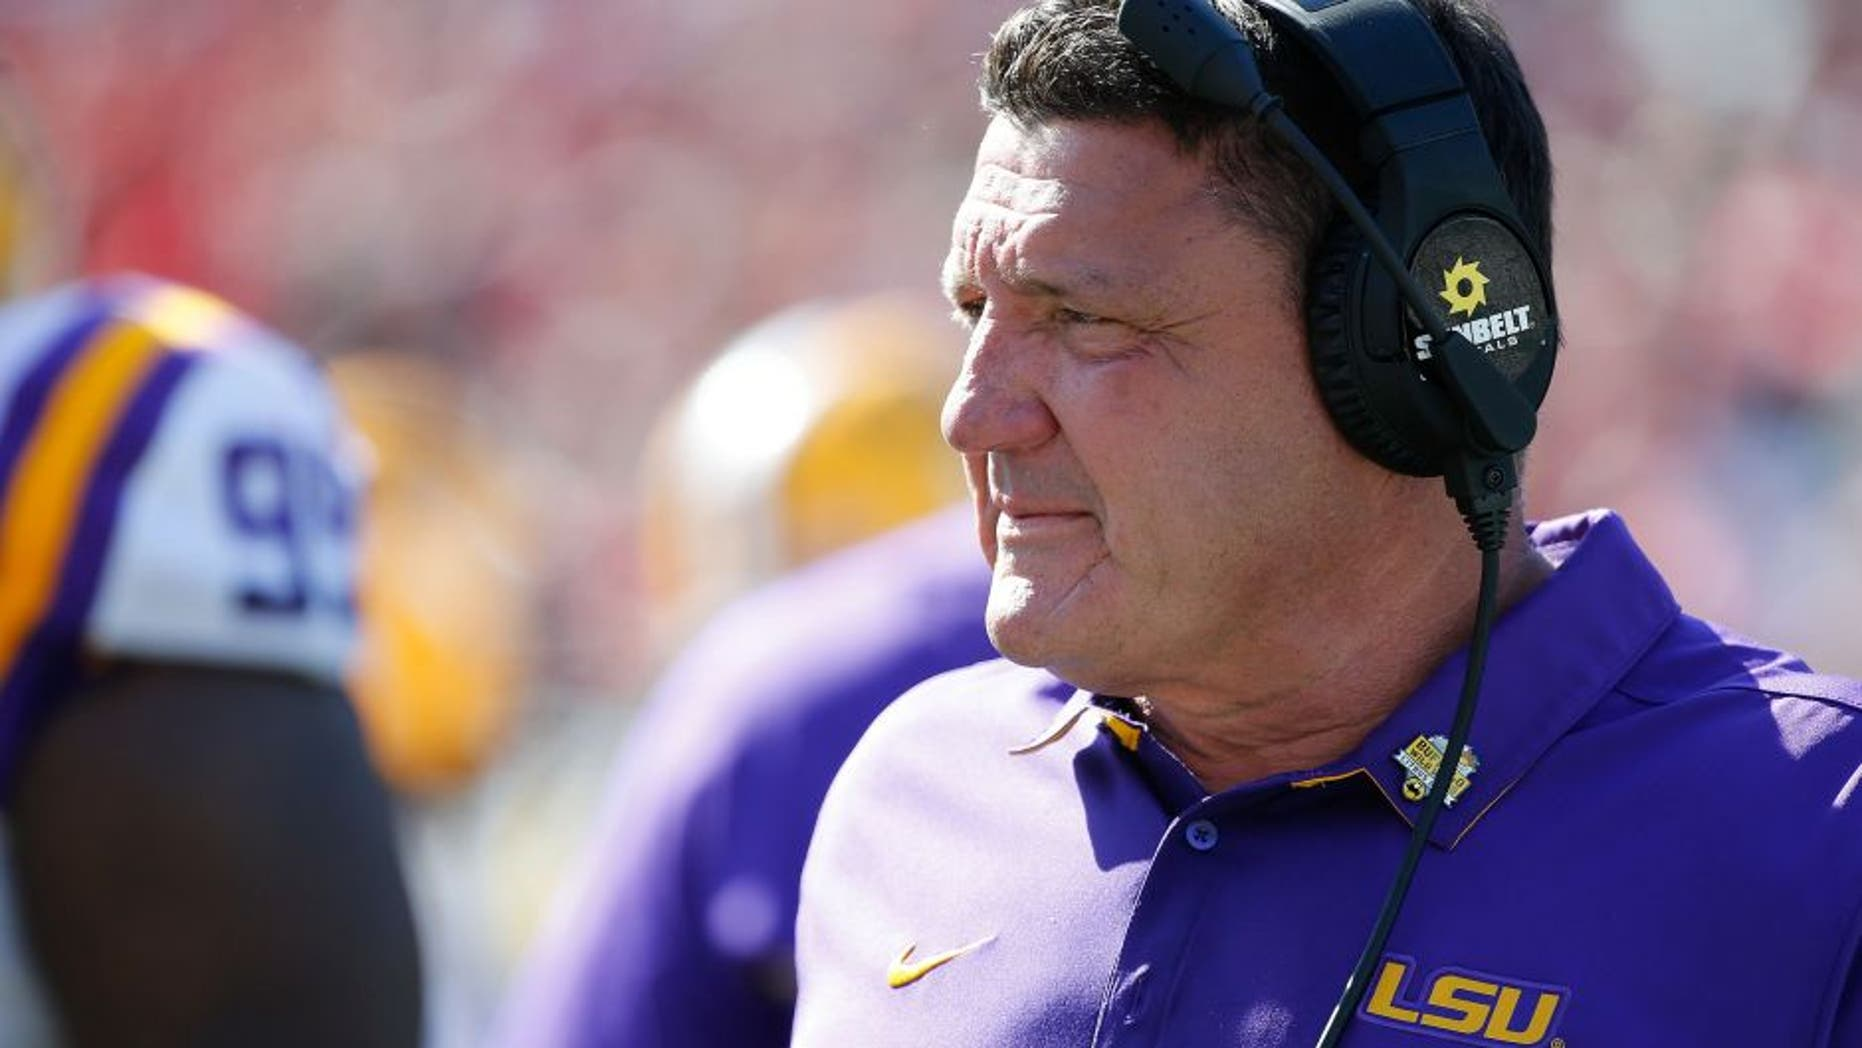 Dec 31, 2016; Orlando , FL, USA; LSU Tigers head coach Ed Orgeron during the second half at Camping World Stadium. LSU Tigers defeated the Louisville Cardinals 29-9. Mandatory Credit: Kim Klement-USA TODAY Sports